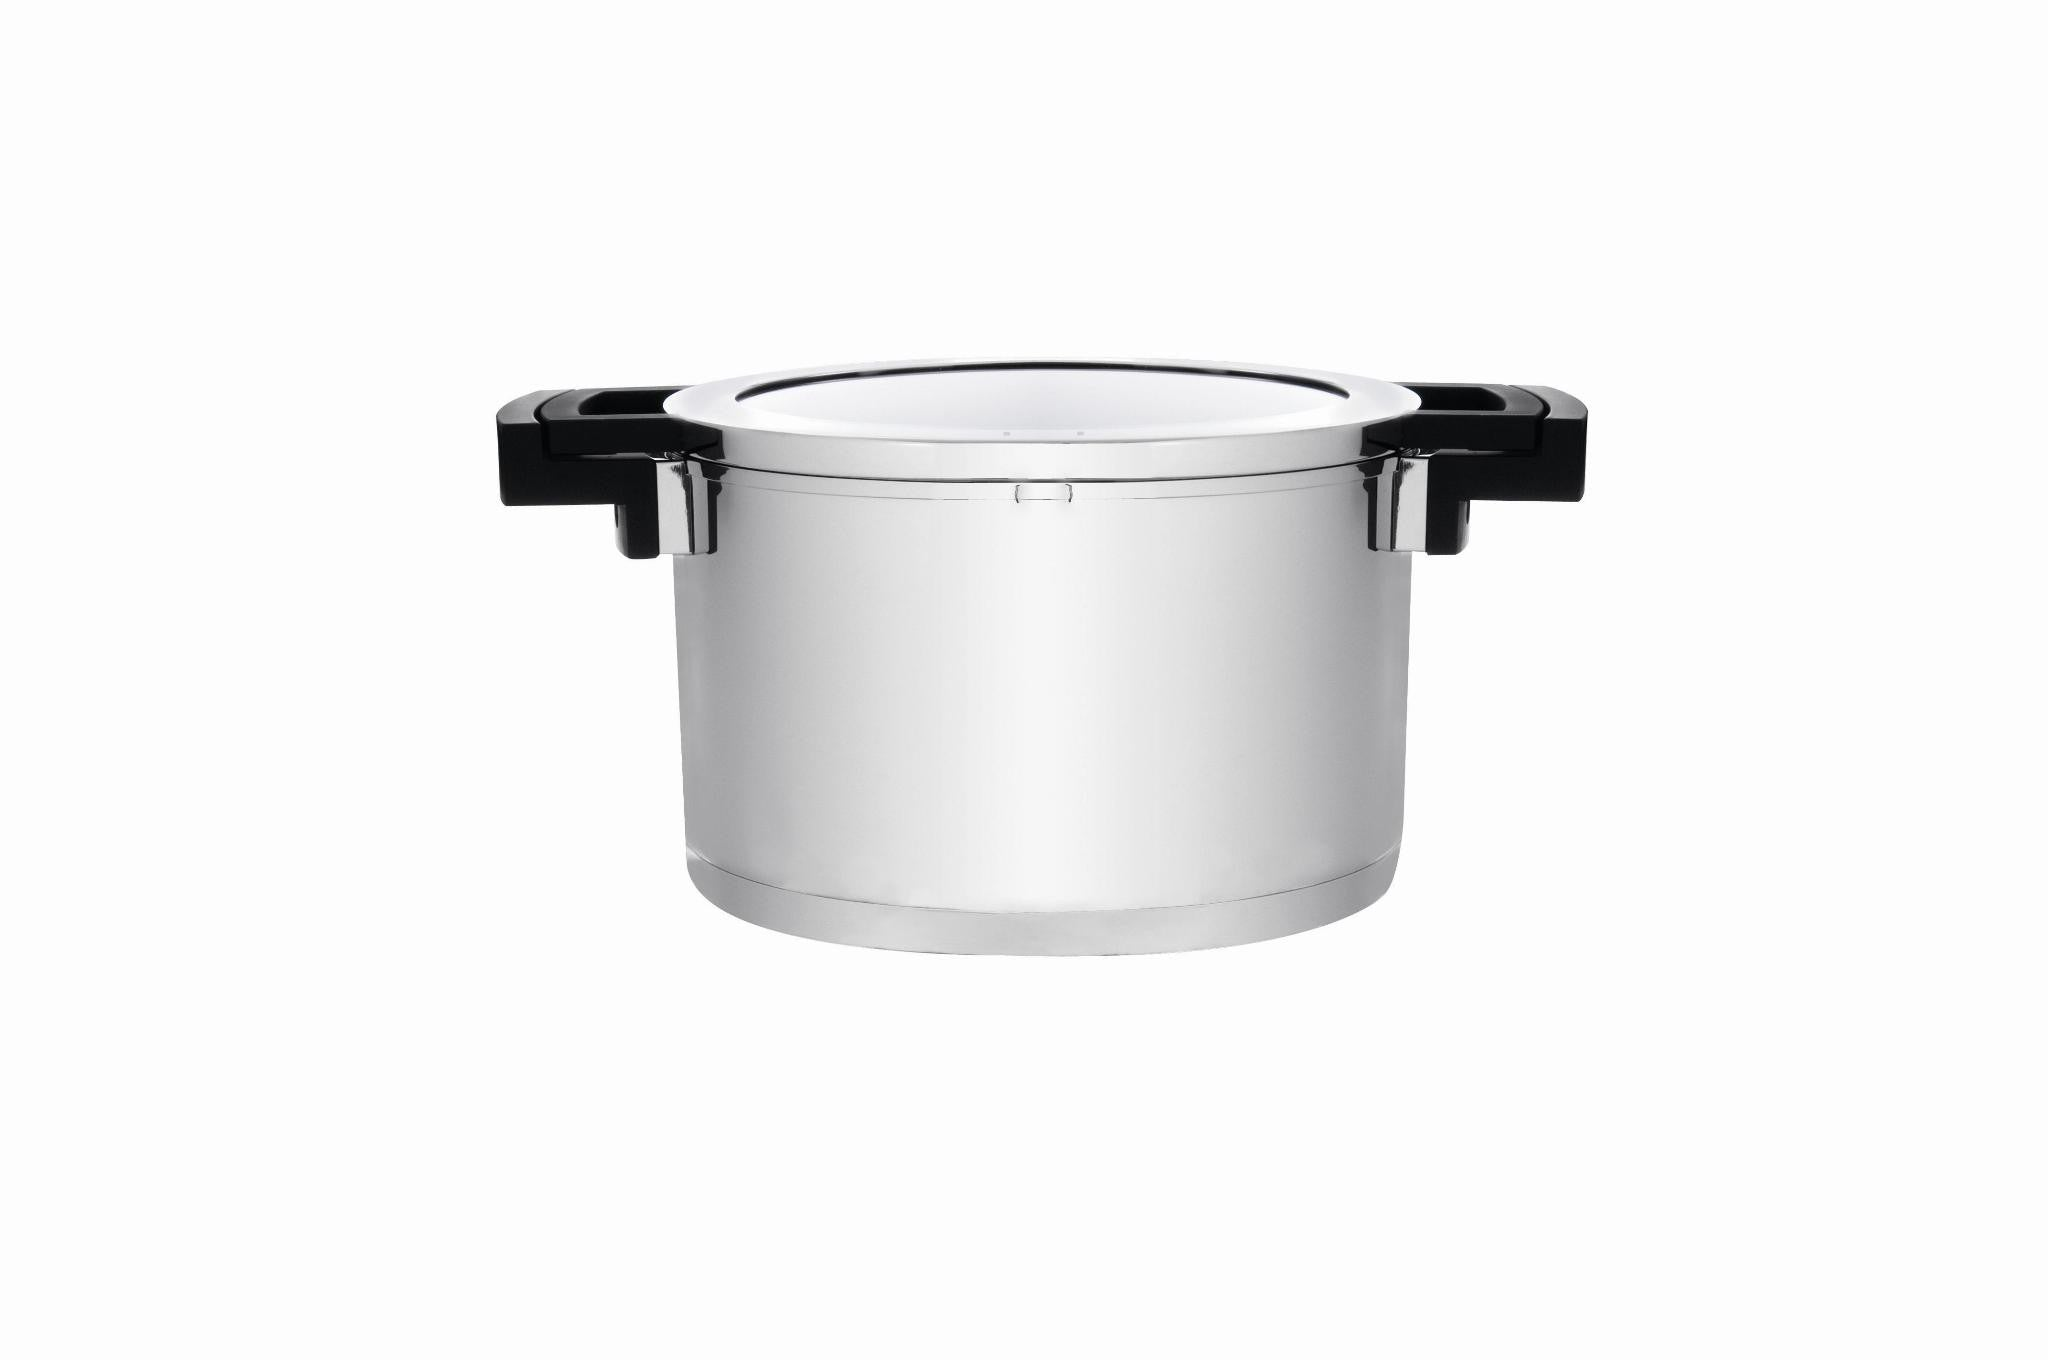 Neo Glass 24cm Covered Stockpot